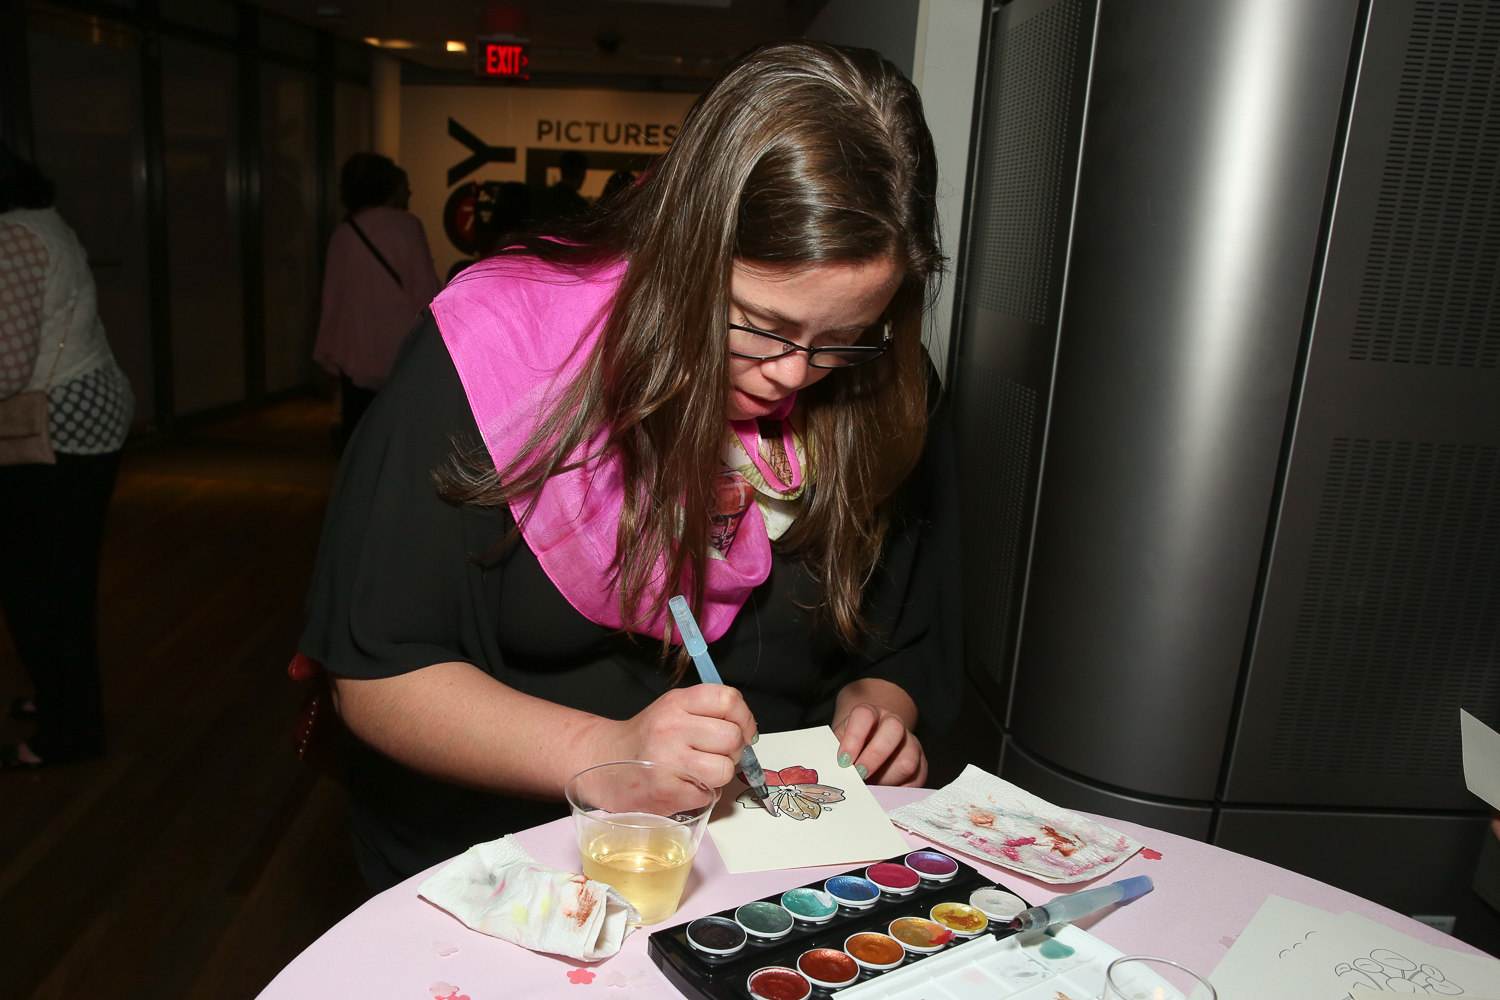 Water coloring was a popular activity.{ }(Amanda Andrade-Rhoades/DC Refined)